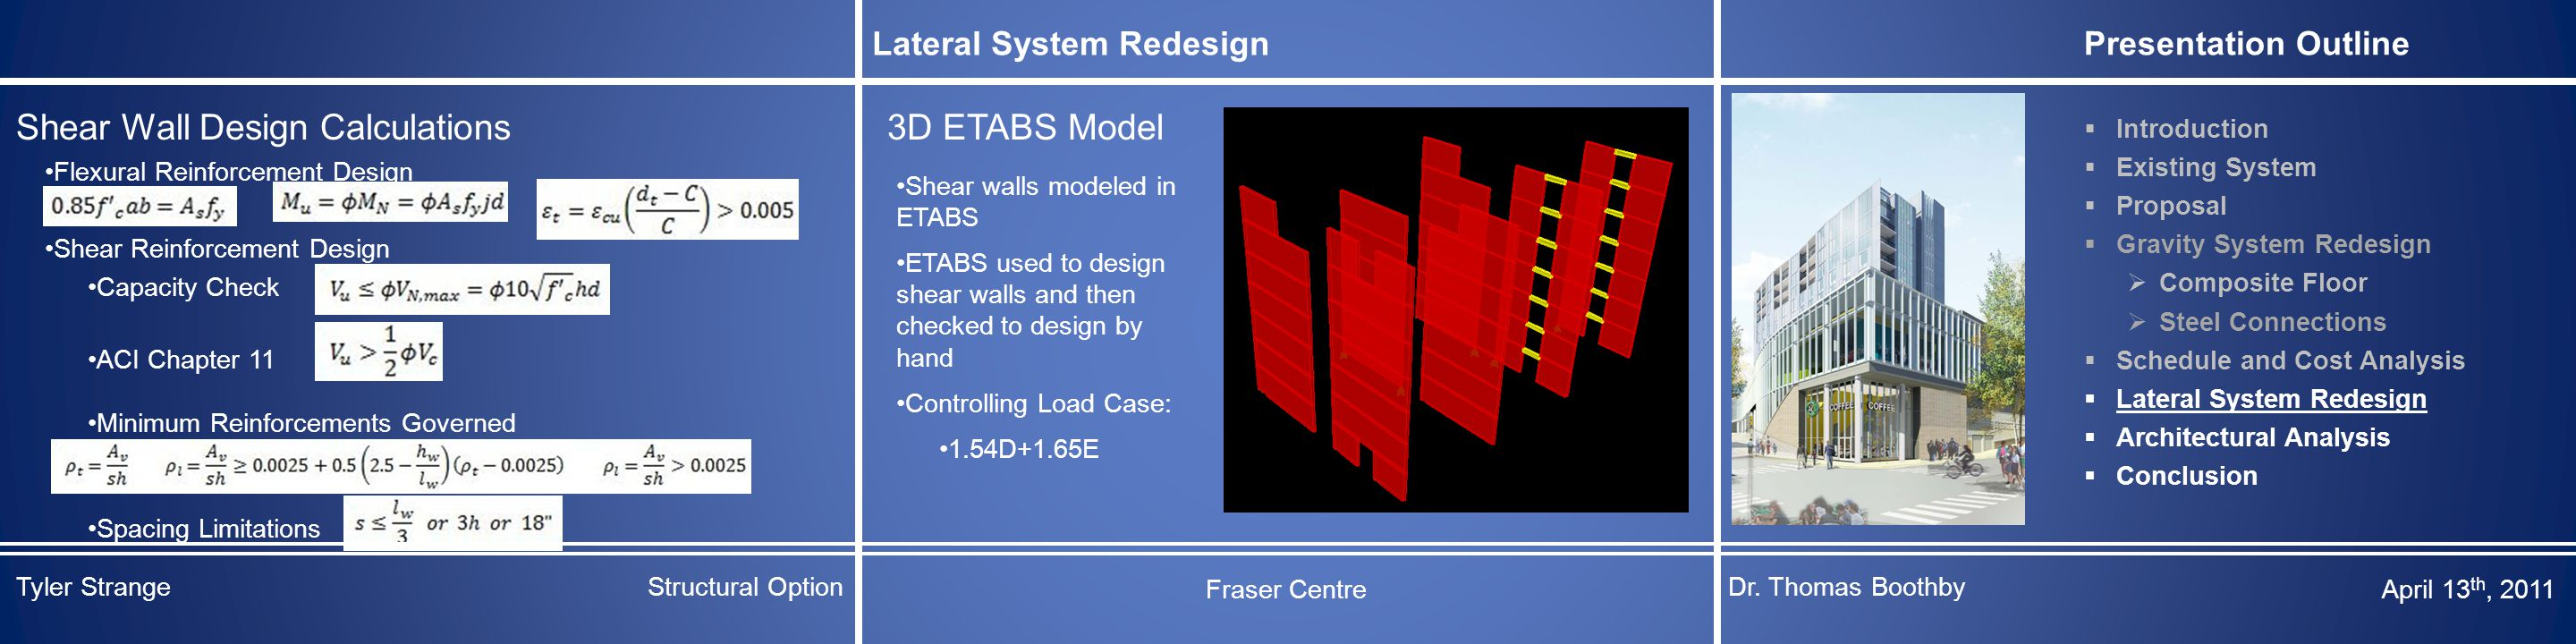 Lateral System Redesign Presentation Outline  Introduction  Existing System  Proposal  Gravity System Redesign  Composite Floor  Steel Connections  Schedule and Cost Analysis  Lateral System Redesign  Architectural Analysis  Conclusion Shear Wall Design Calculations Flexural Reinforcement Design Shear Reinforcement Design Capacity Check ACI Chapter 11 Minimum Reinforcements Governed Spacing Limitations 3D ETABS Model Shear walls modeled in ETABS ETABS used to design shear walls and then checked to design by hand Controlling Load Case: 1.54D+1.65E Tyler StrangeStructural Option Fraser Centre Dr.